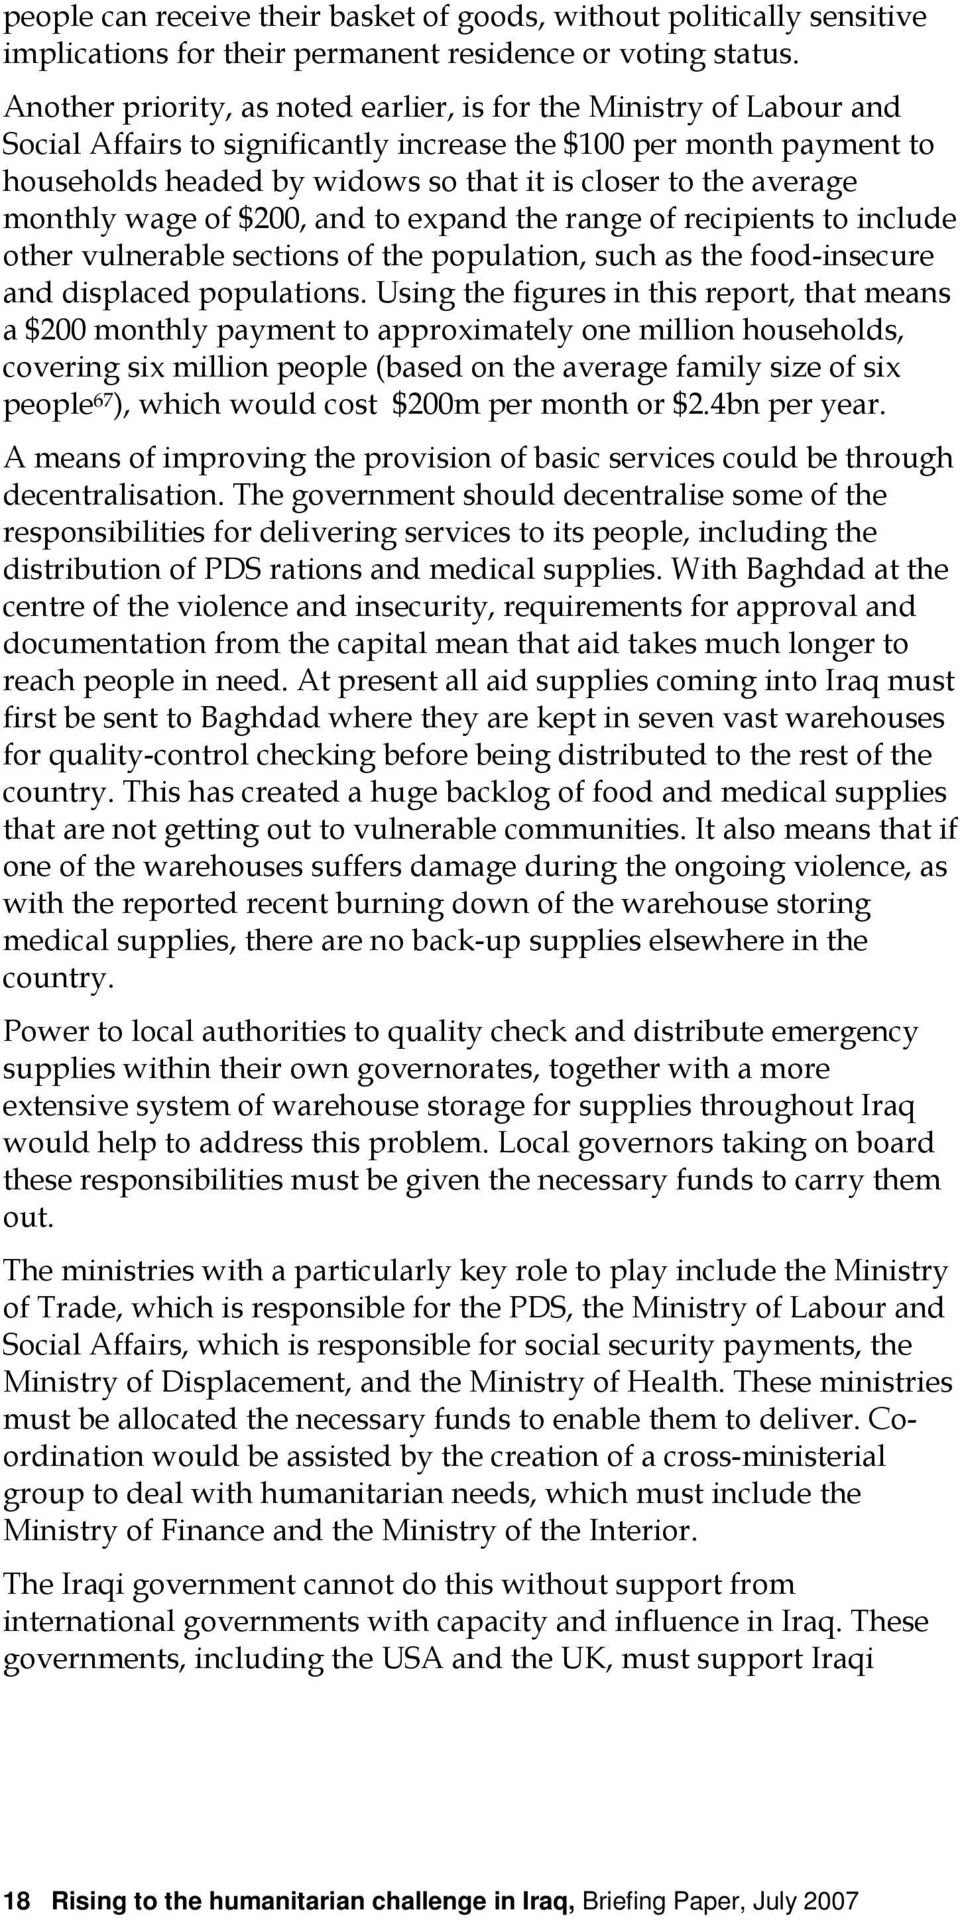 average monthly wage of $200, and to expand the range of recipients to include other vulnerable sections of the population, such as the food-insecure and displaced populations.